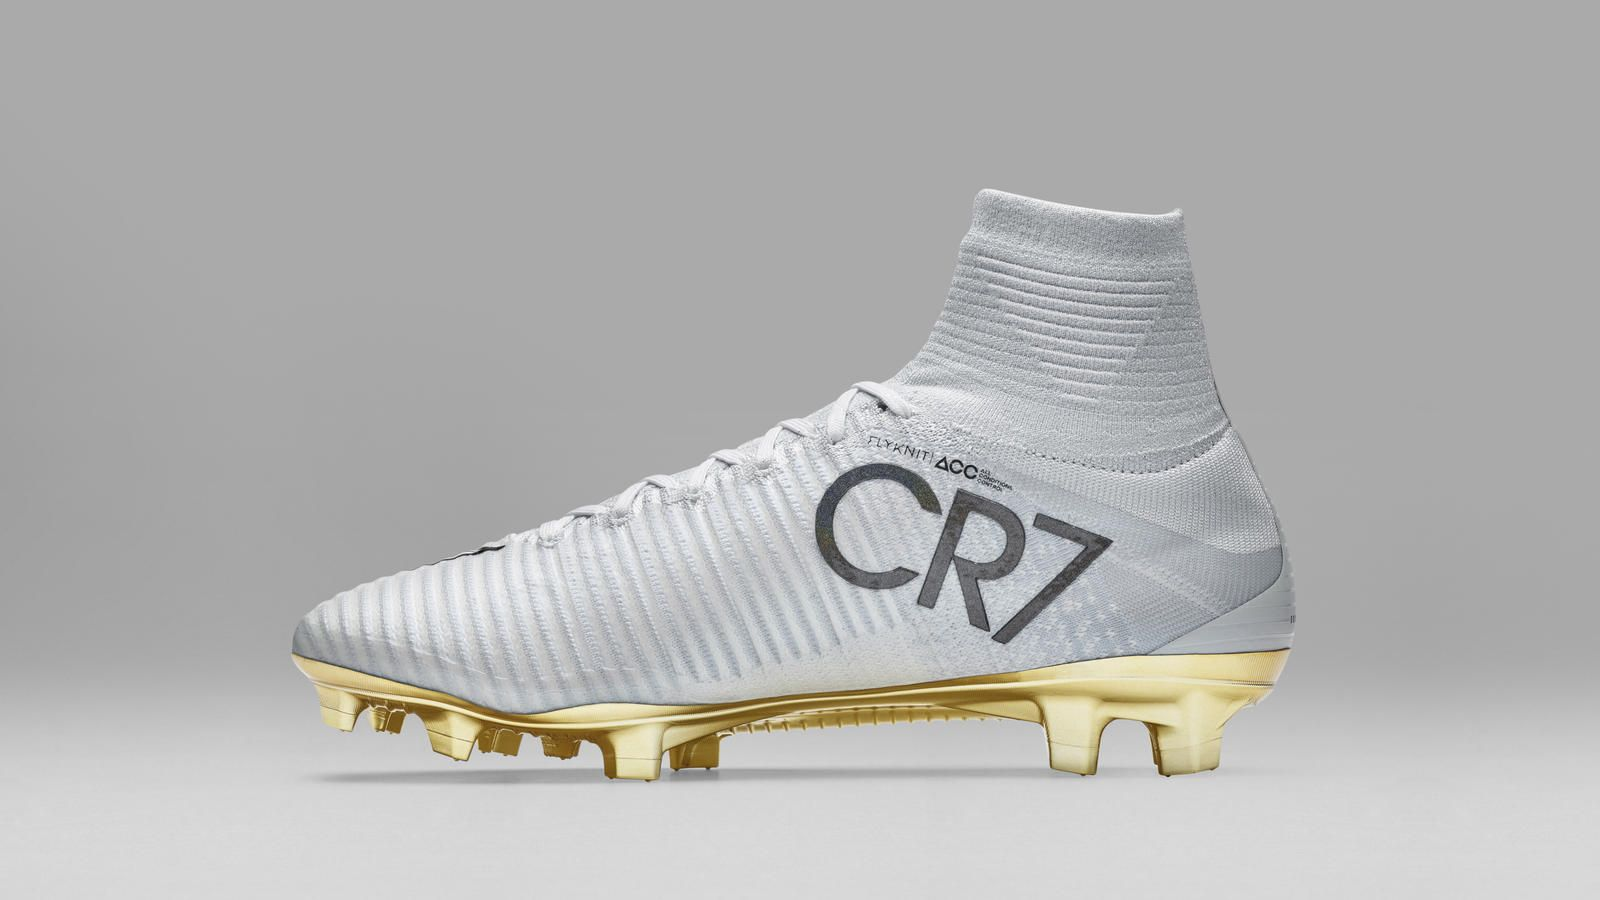 0fae8ca9321 Nike News - Nike Pays Tribute to Cristiano Ronaldo s Tremendous Year With  Limited-Edition Mercurial Superfly CR7 Vitórias